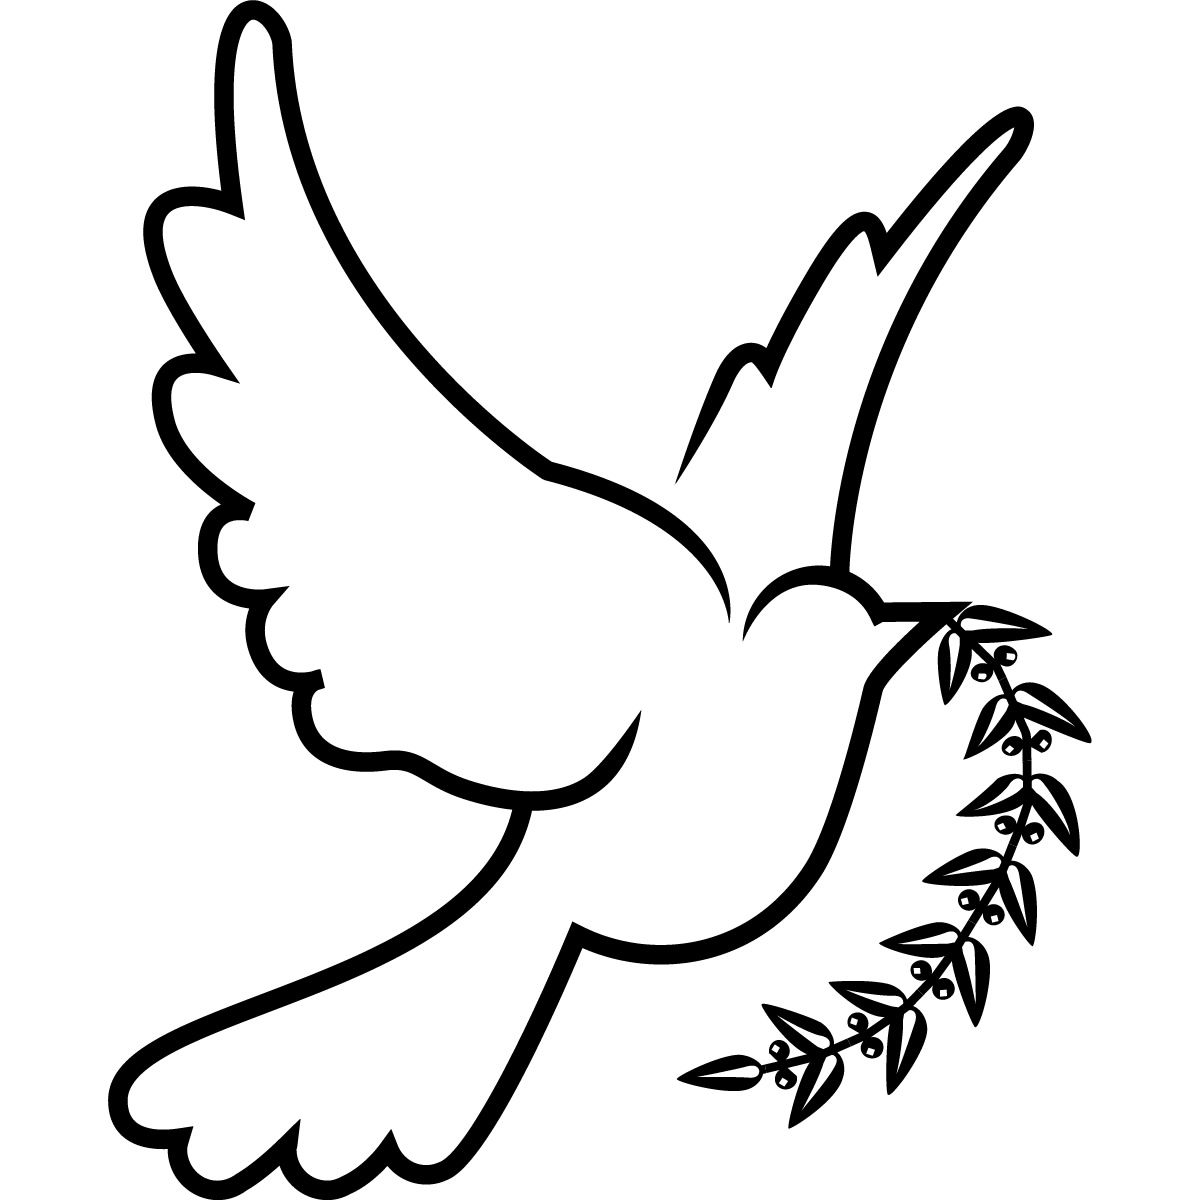 Dove clipart drawing.